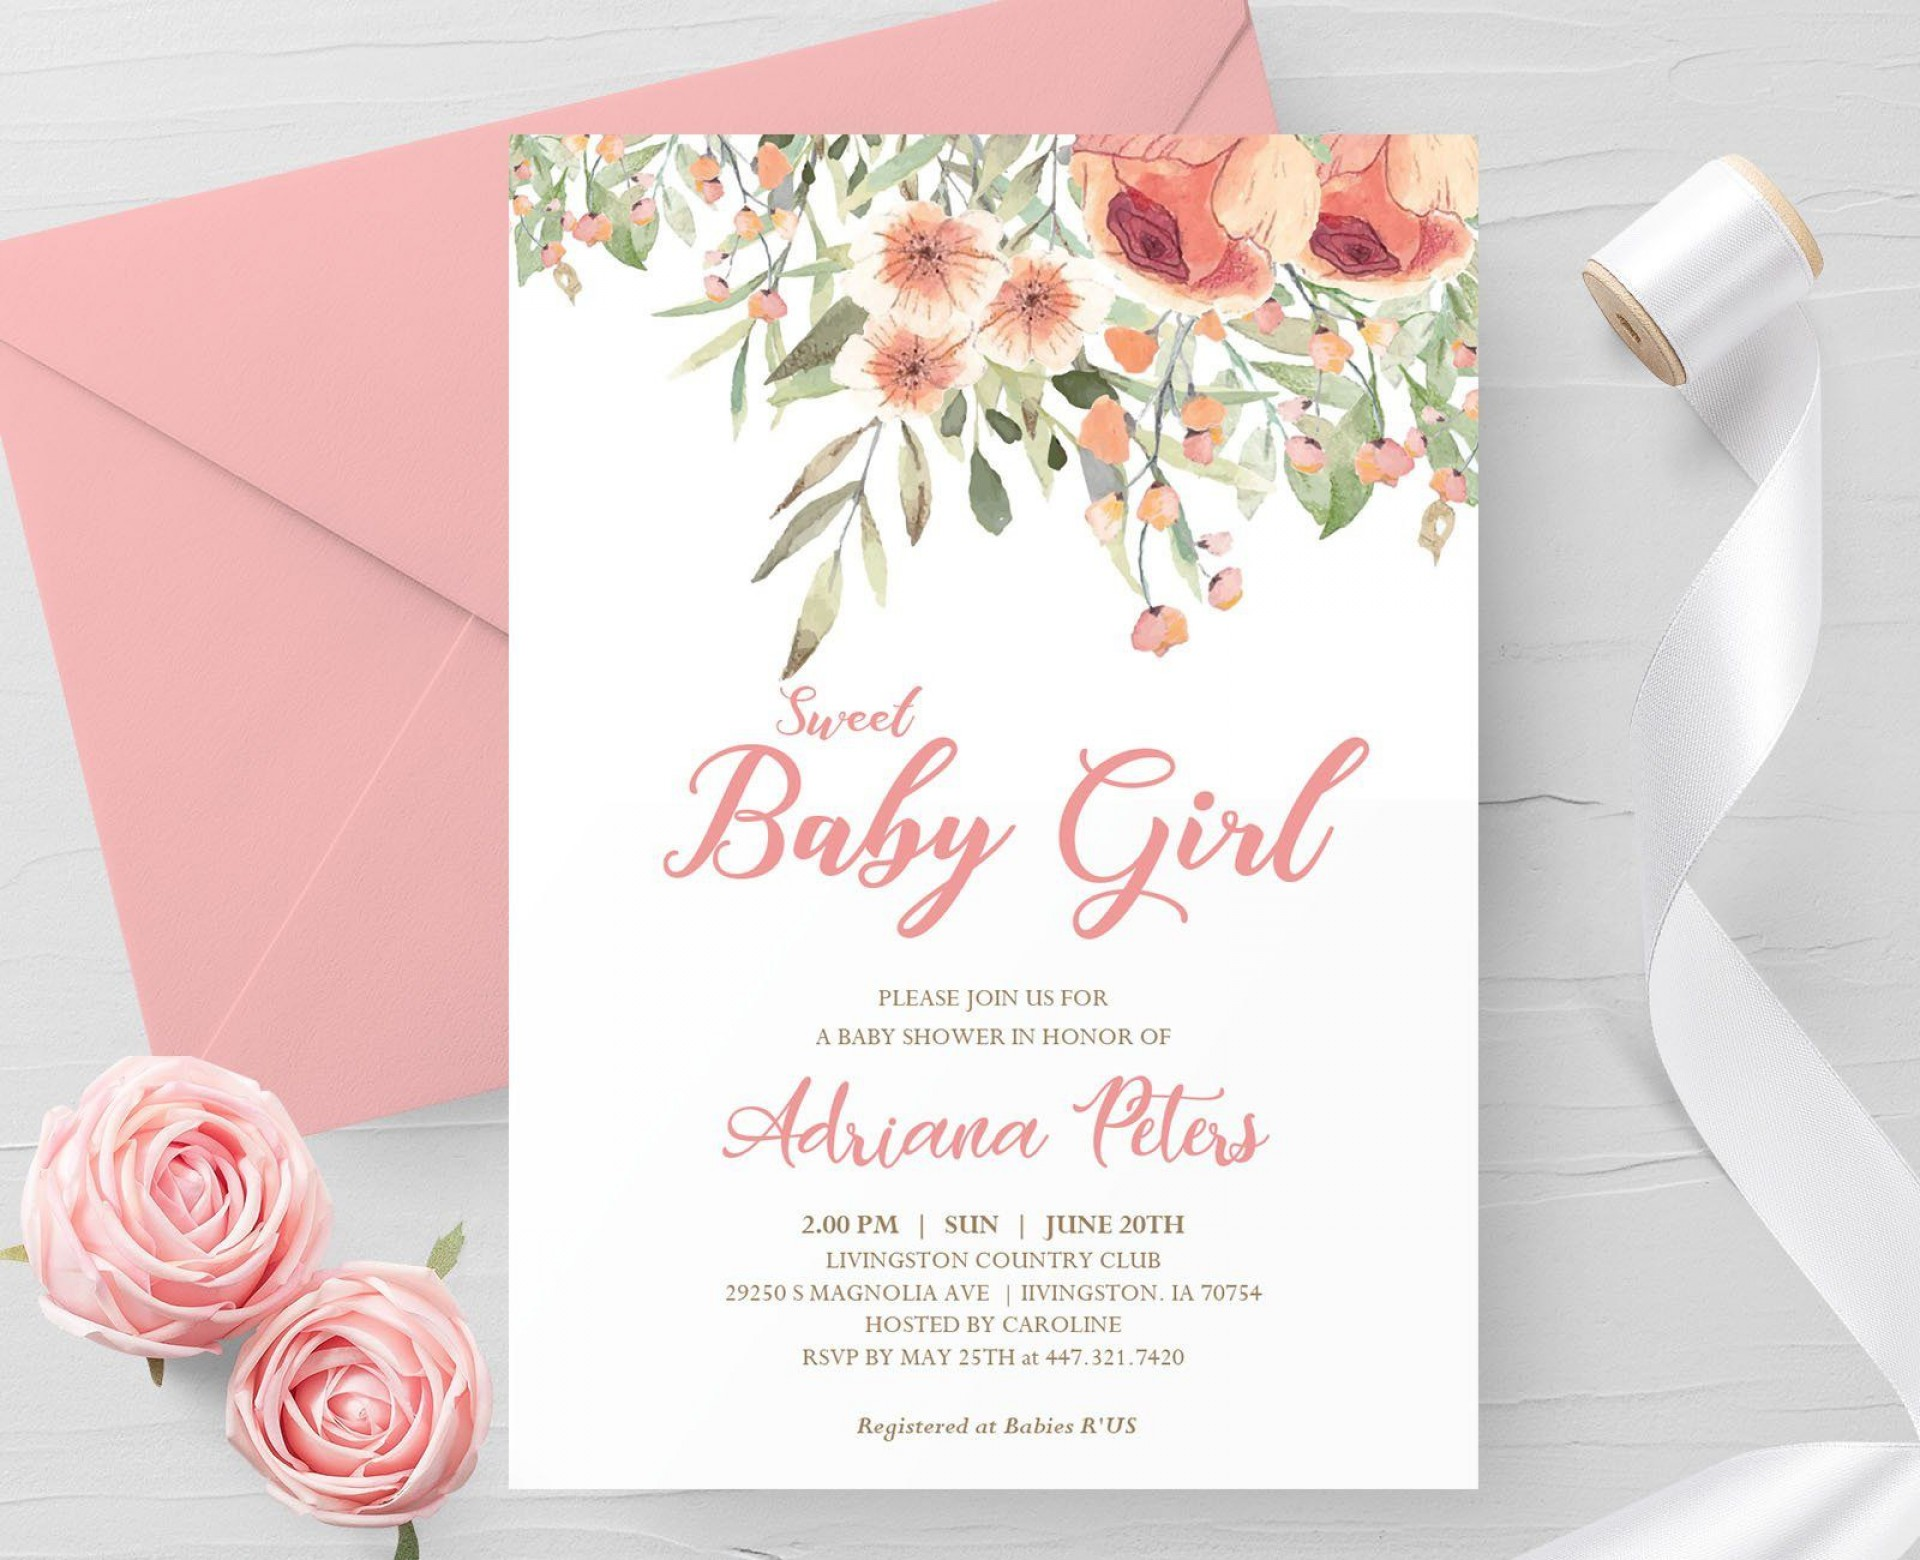 000 Magnificent Baby Shower Invite Template Word Highest Clarity  Invitation Wording Sample Free Example1920